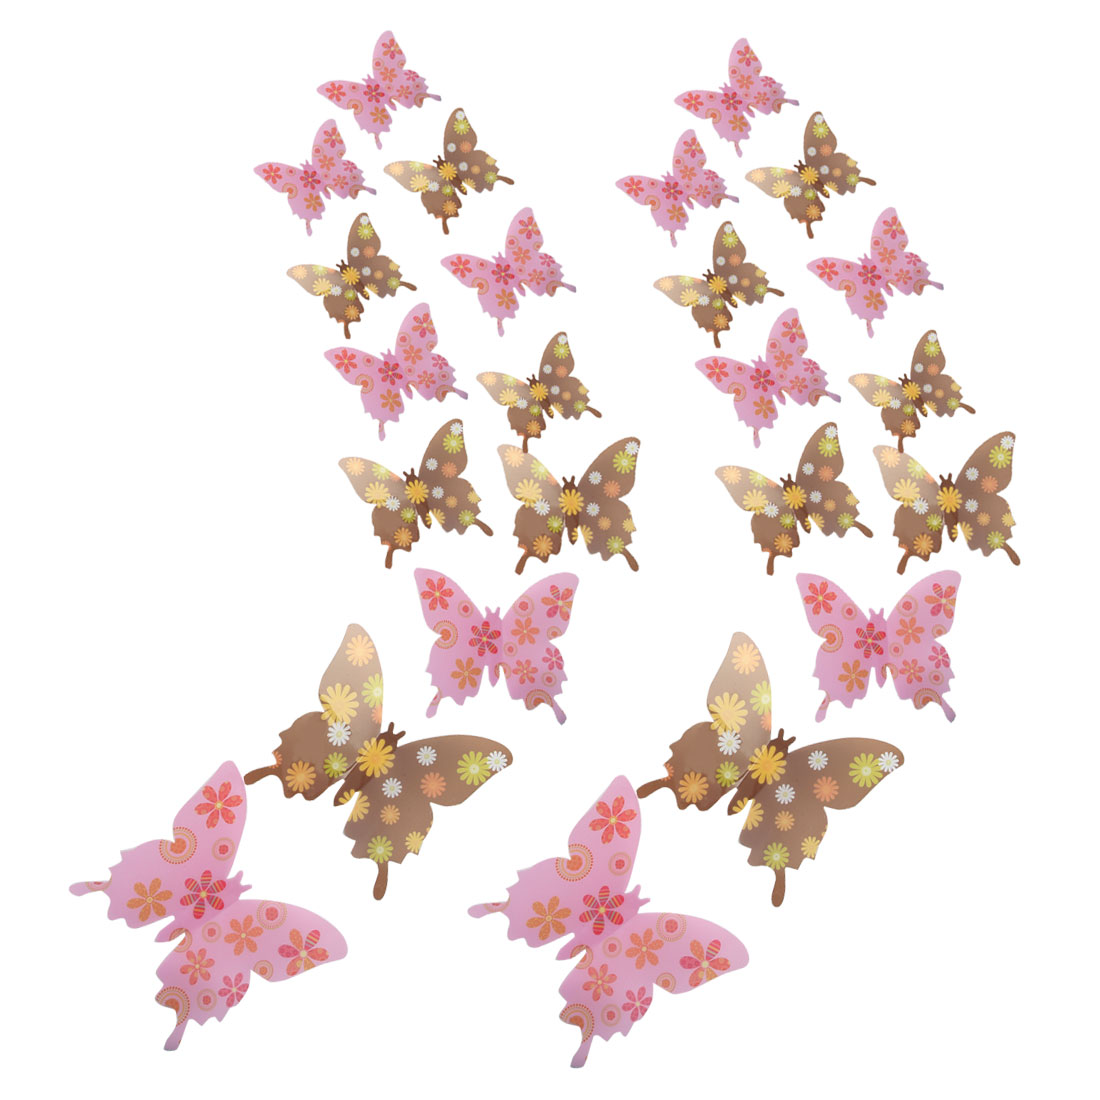 24pcs 3D Butterfly DIY Wall Sticker with Art for Room Decor Pink Chocolate Color